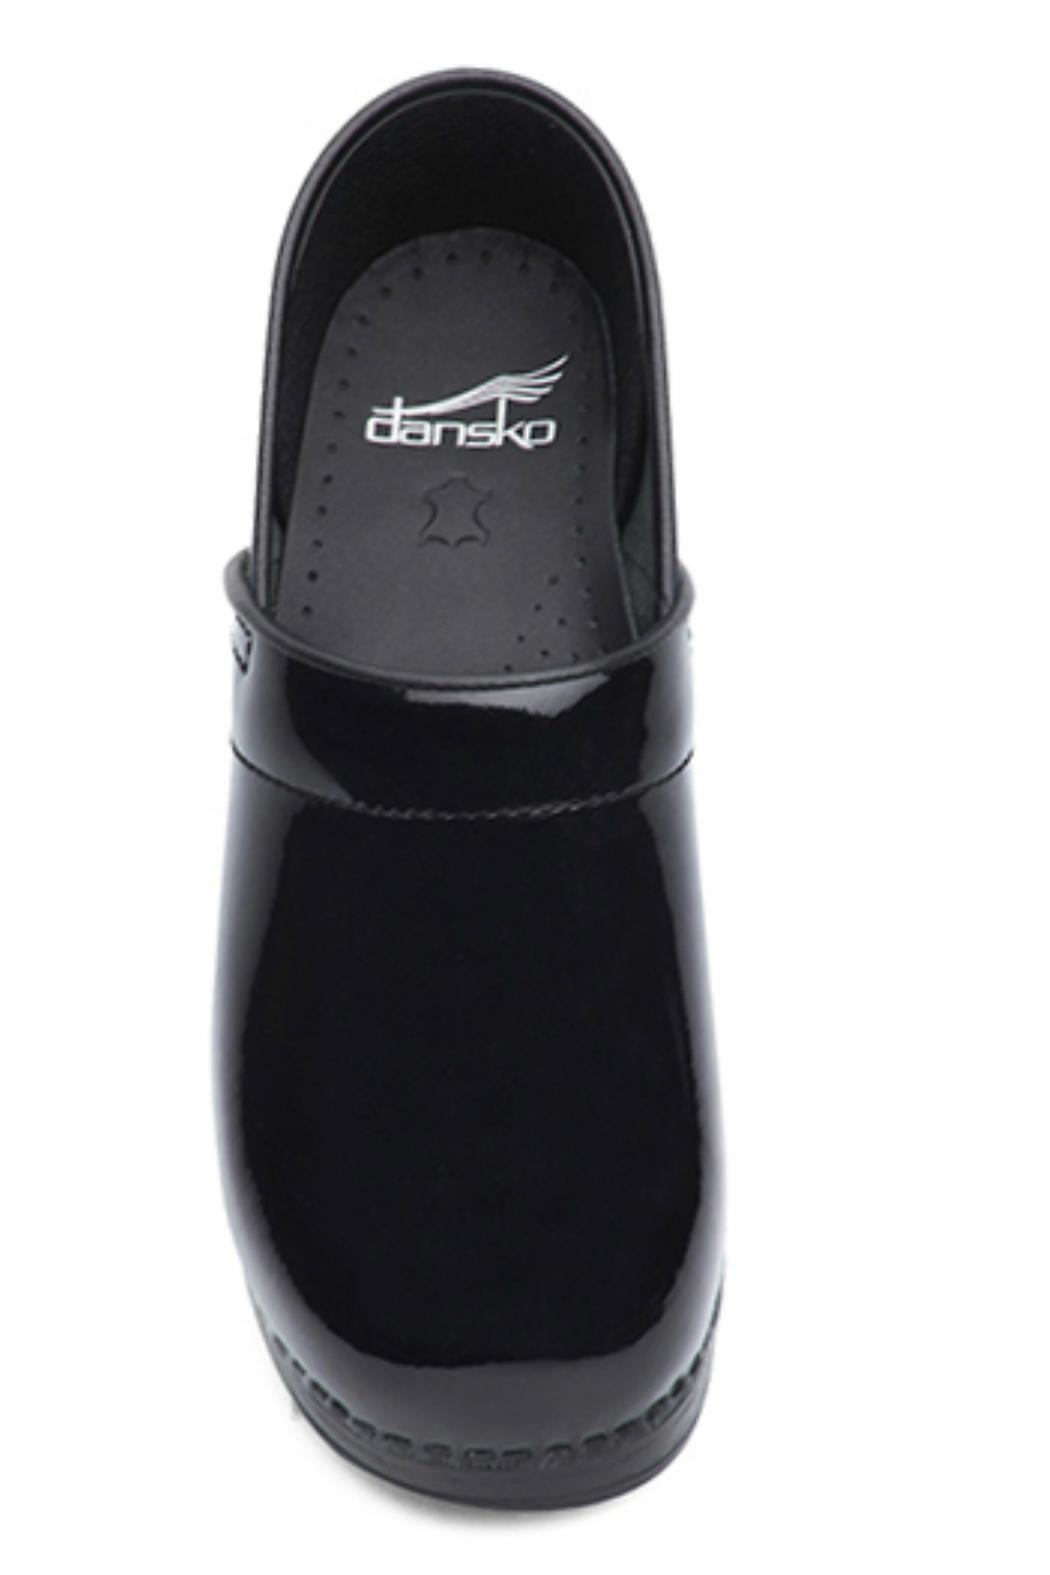 Dansko Black Patent Clog Shoes - Main Image